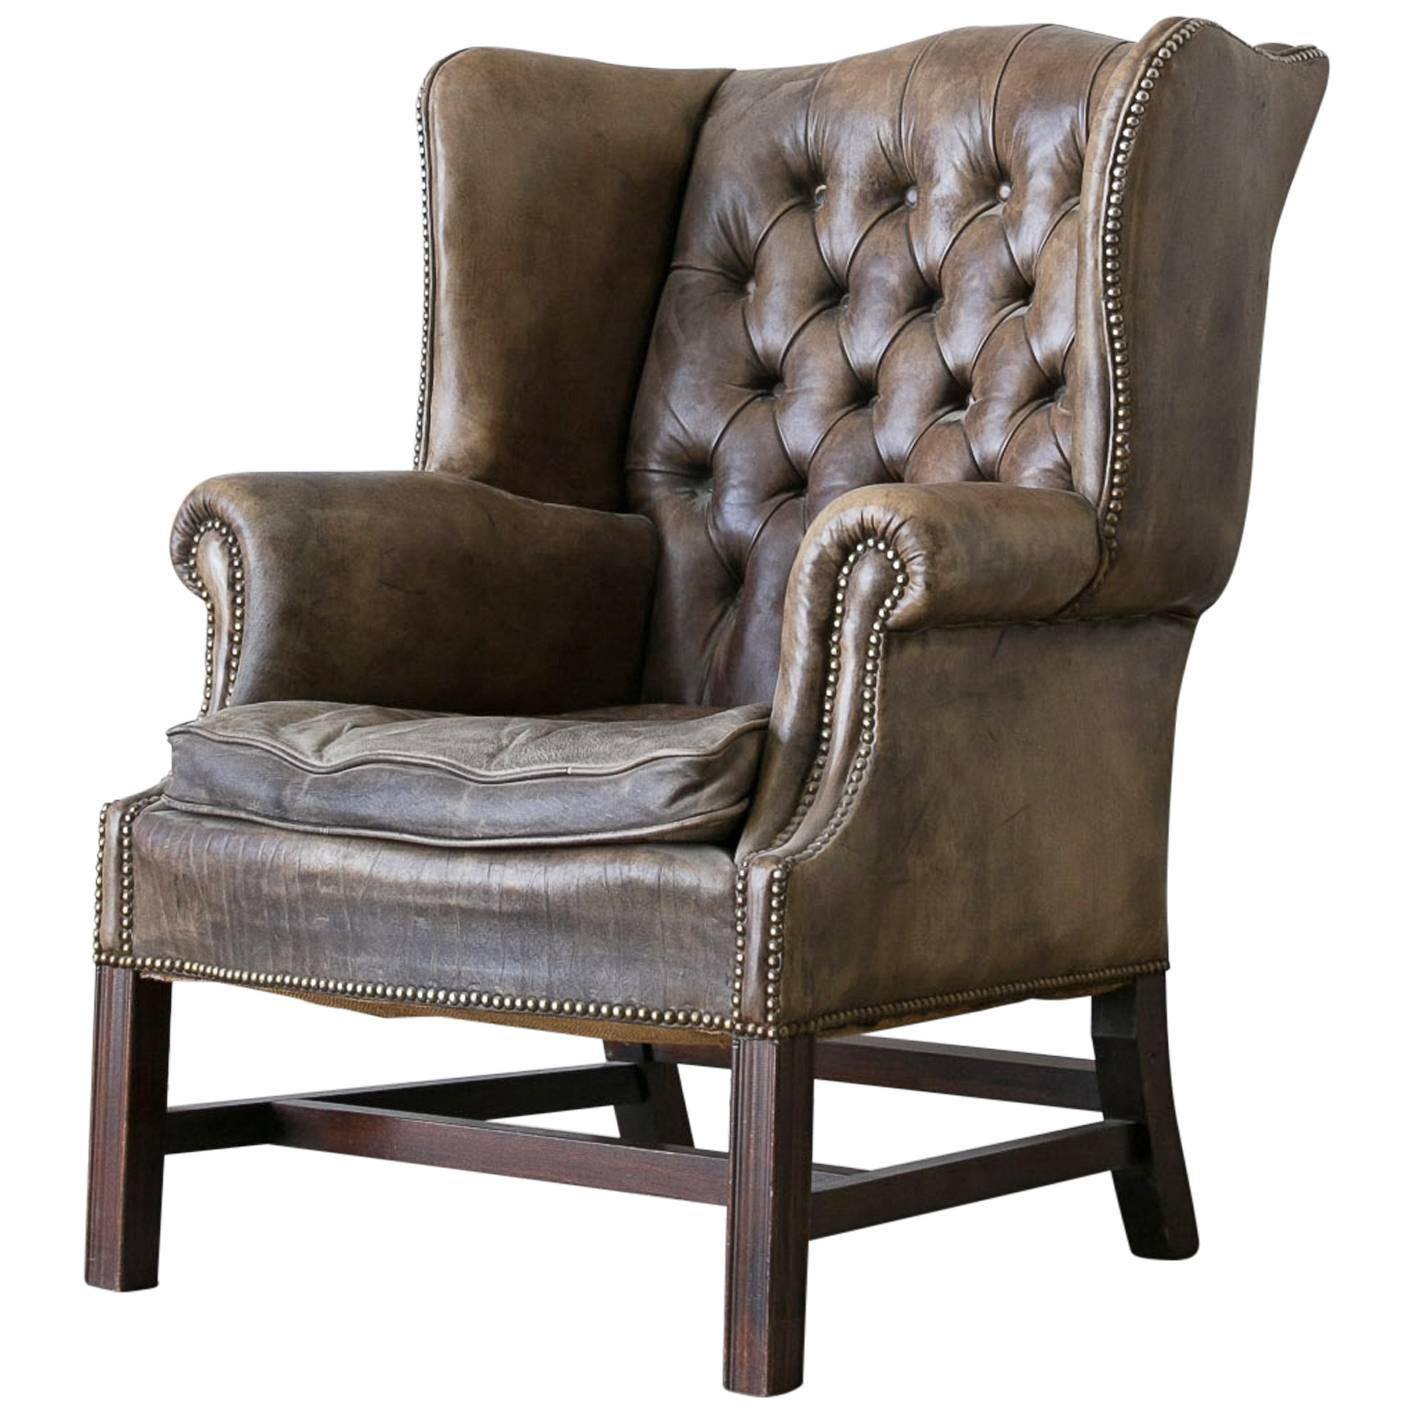 leather wingback chairs wedding chair covers sydney vintage chesterfield style at 1stdibs